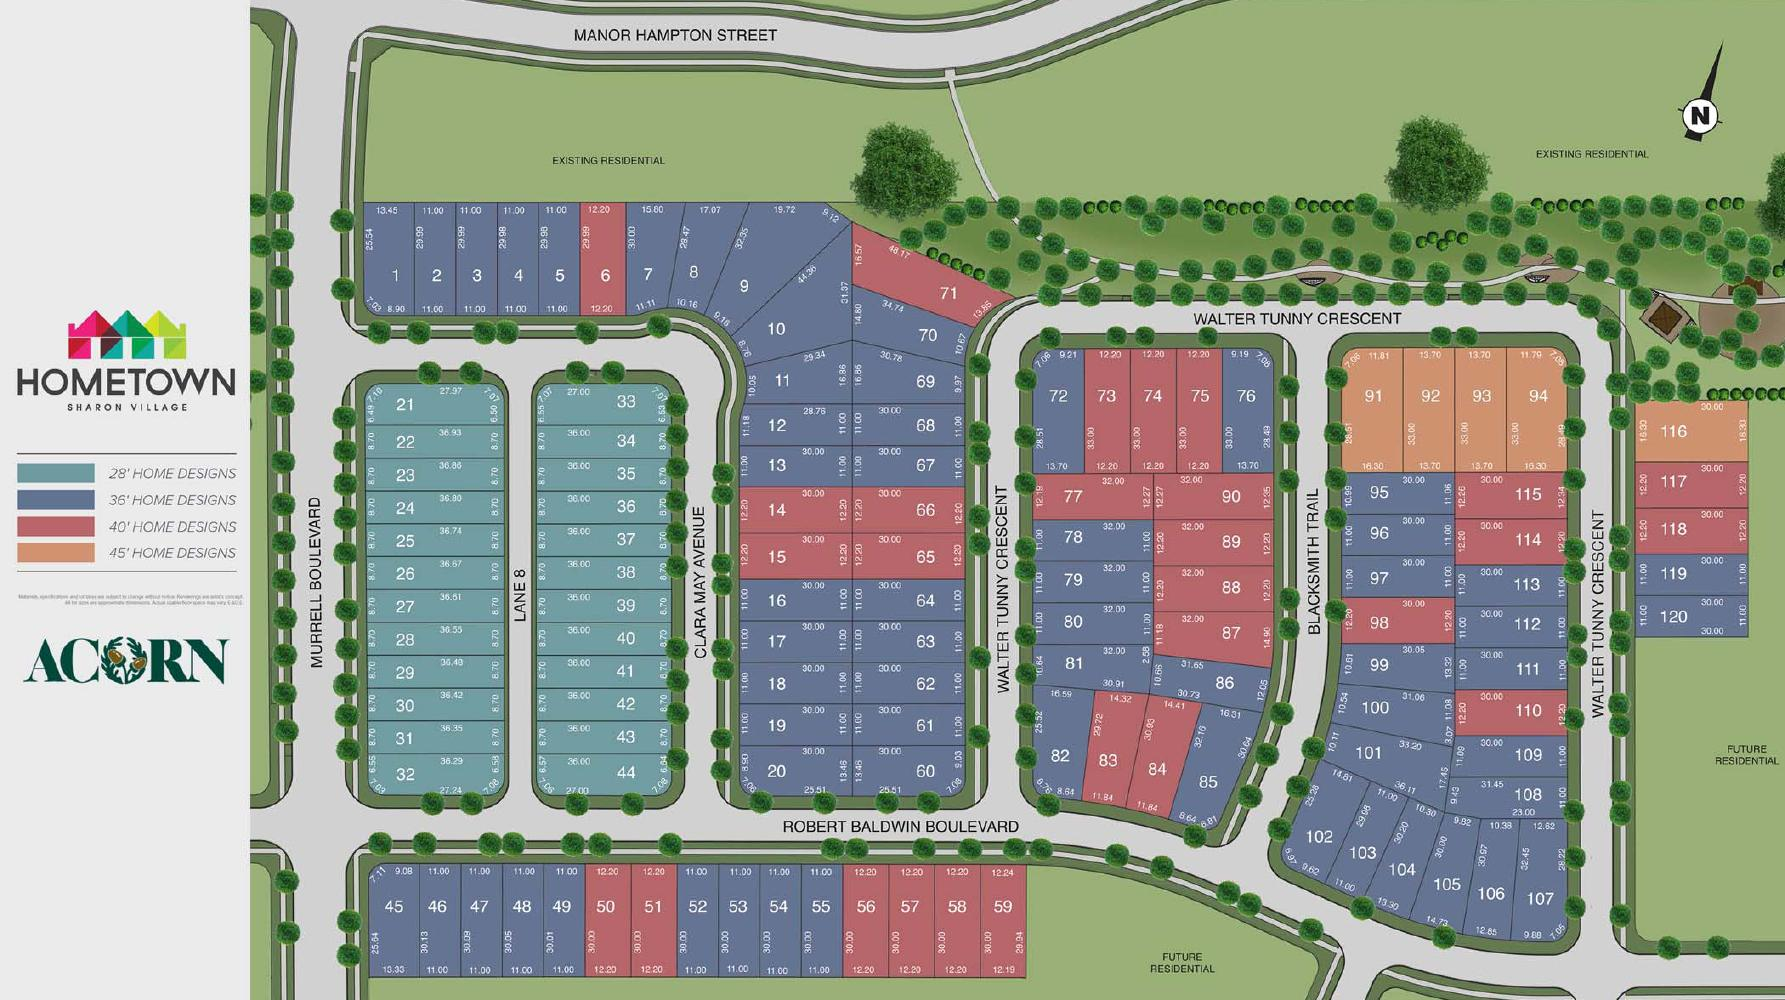 Site plan of Hometown Sharon Village by Acorn Developments